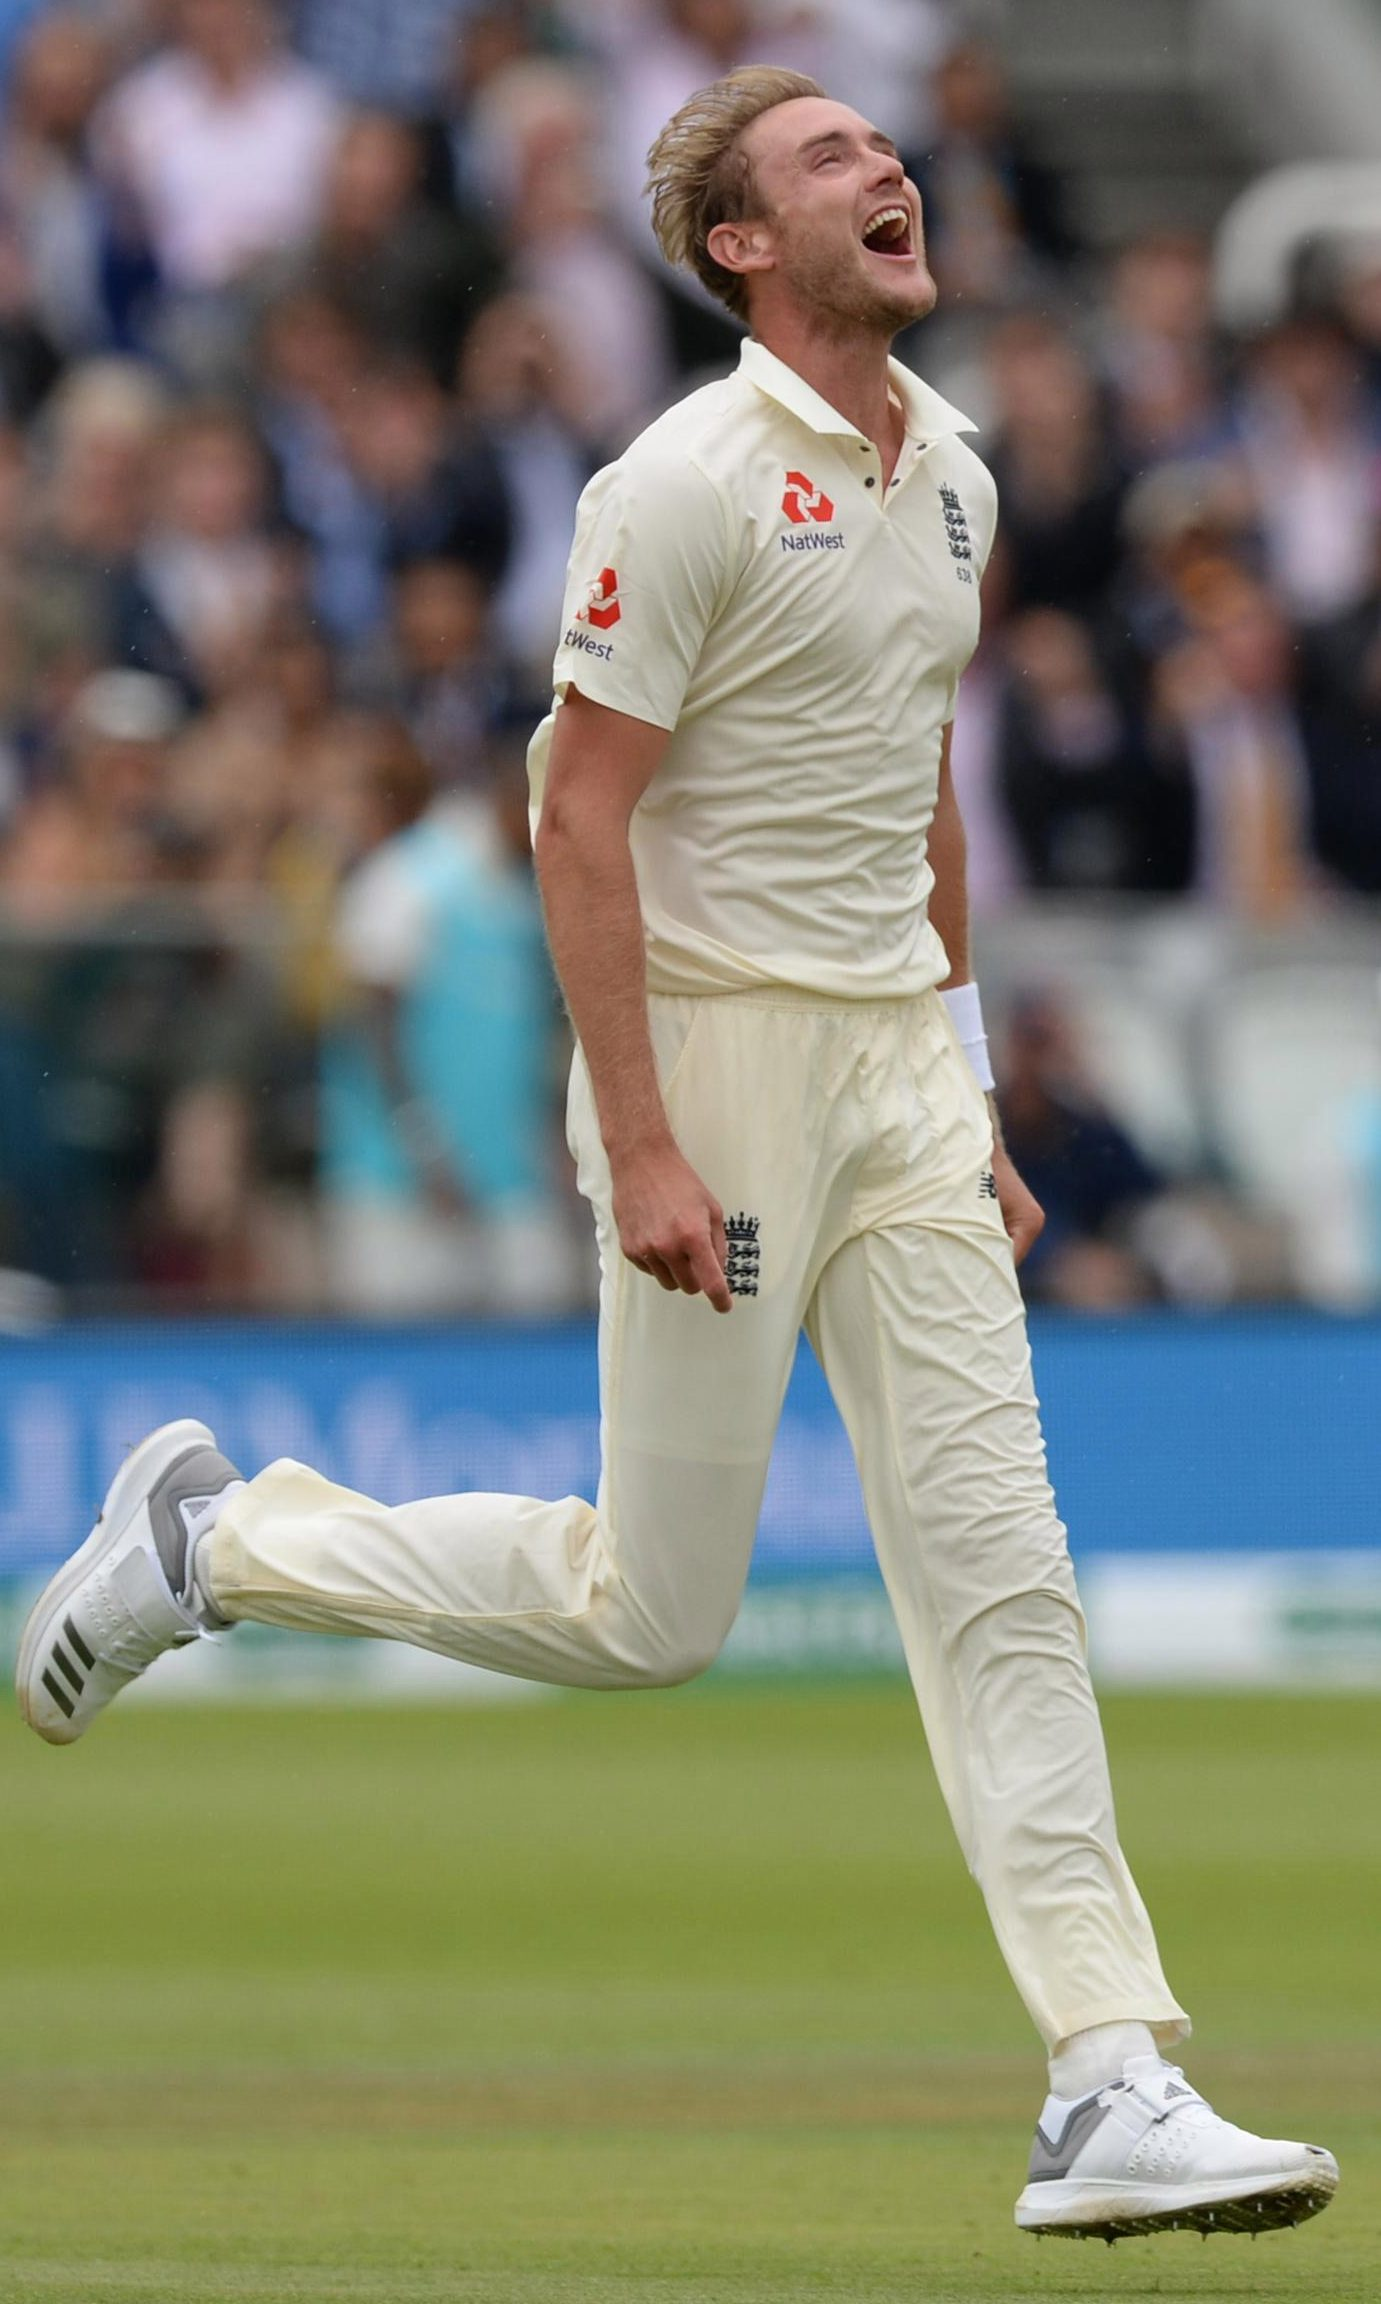 Stuart Broad was in just as devastating form as James Anderson as the highly-experienced duo each took four wickets in the tourists' dismal second innings